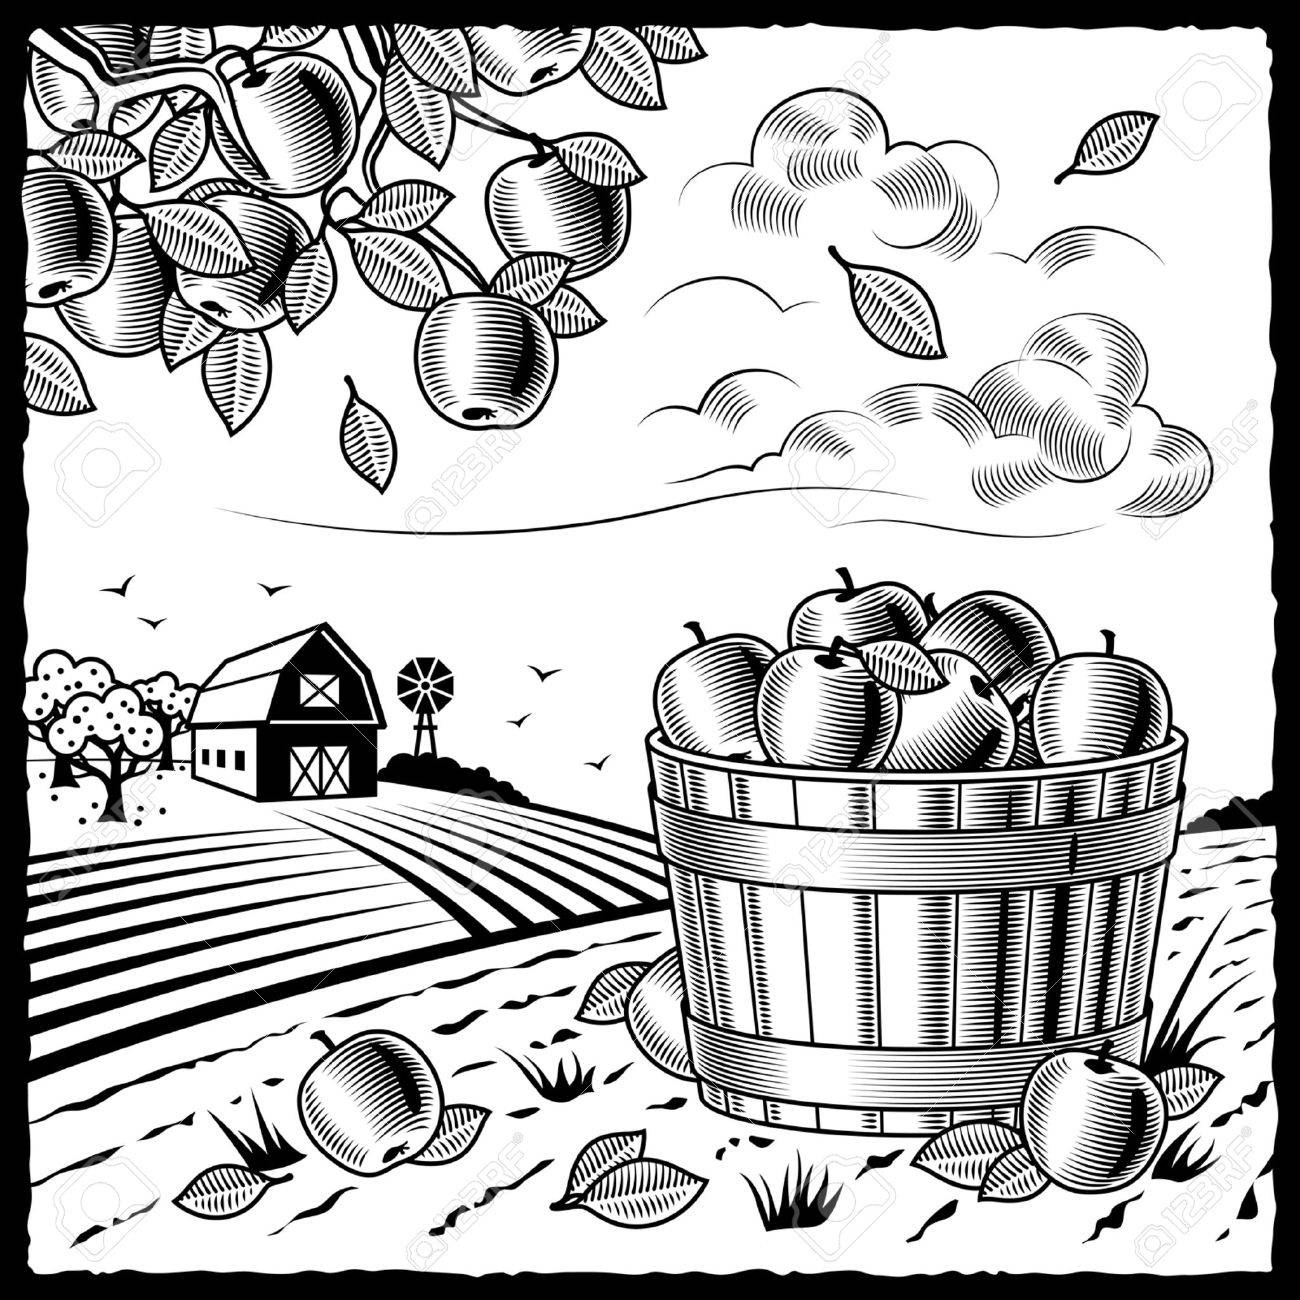 Agriculture Clipart Black And White harvest black and white